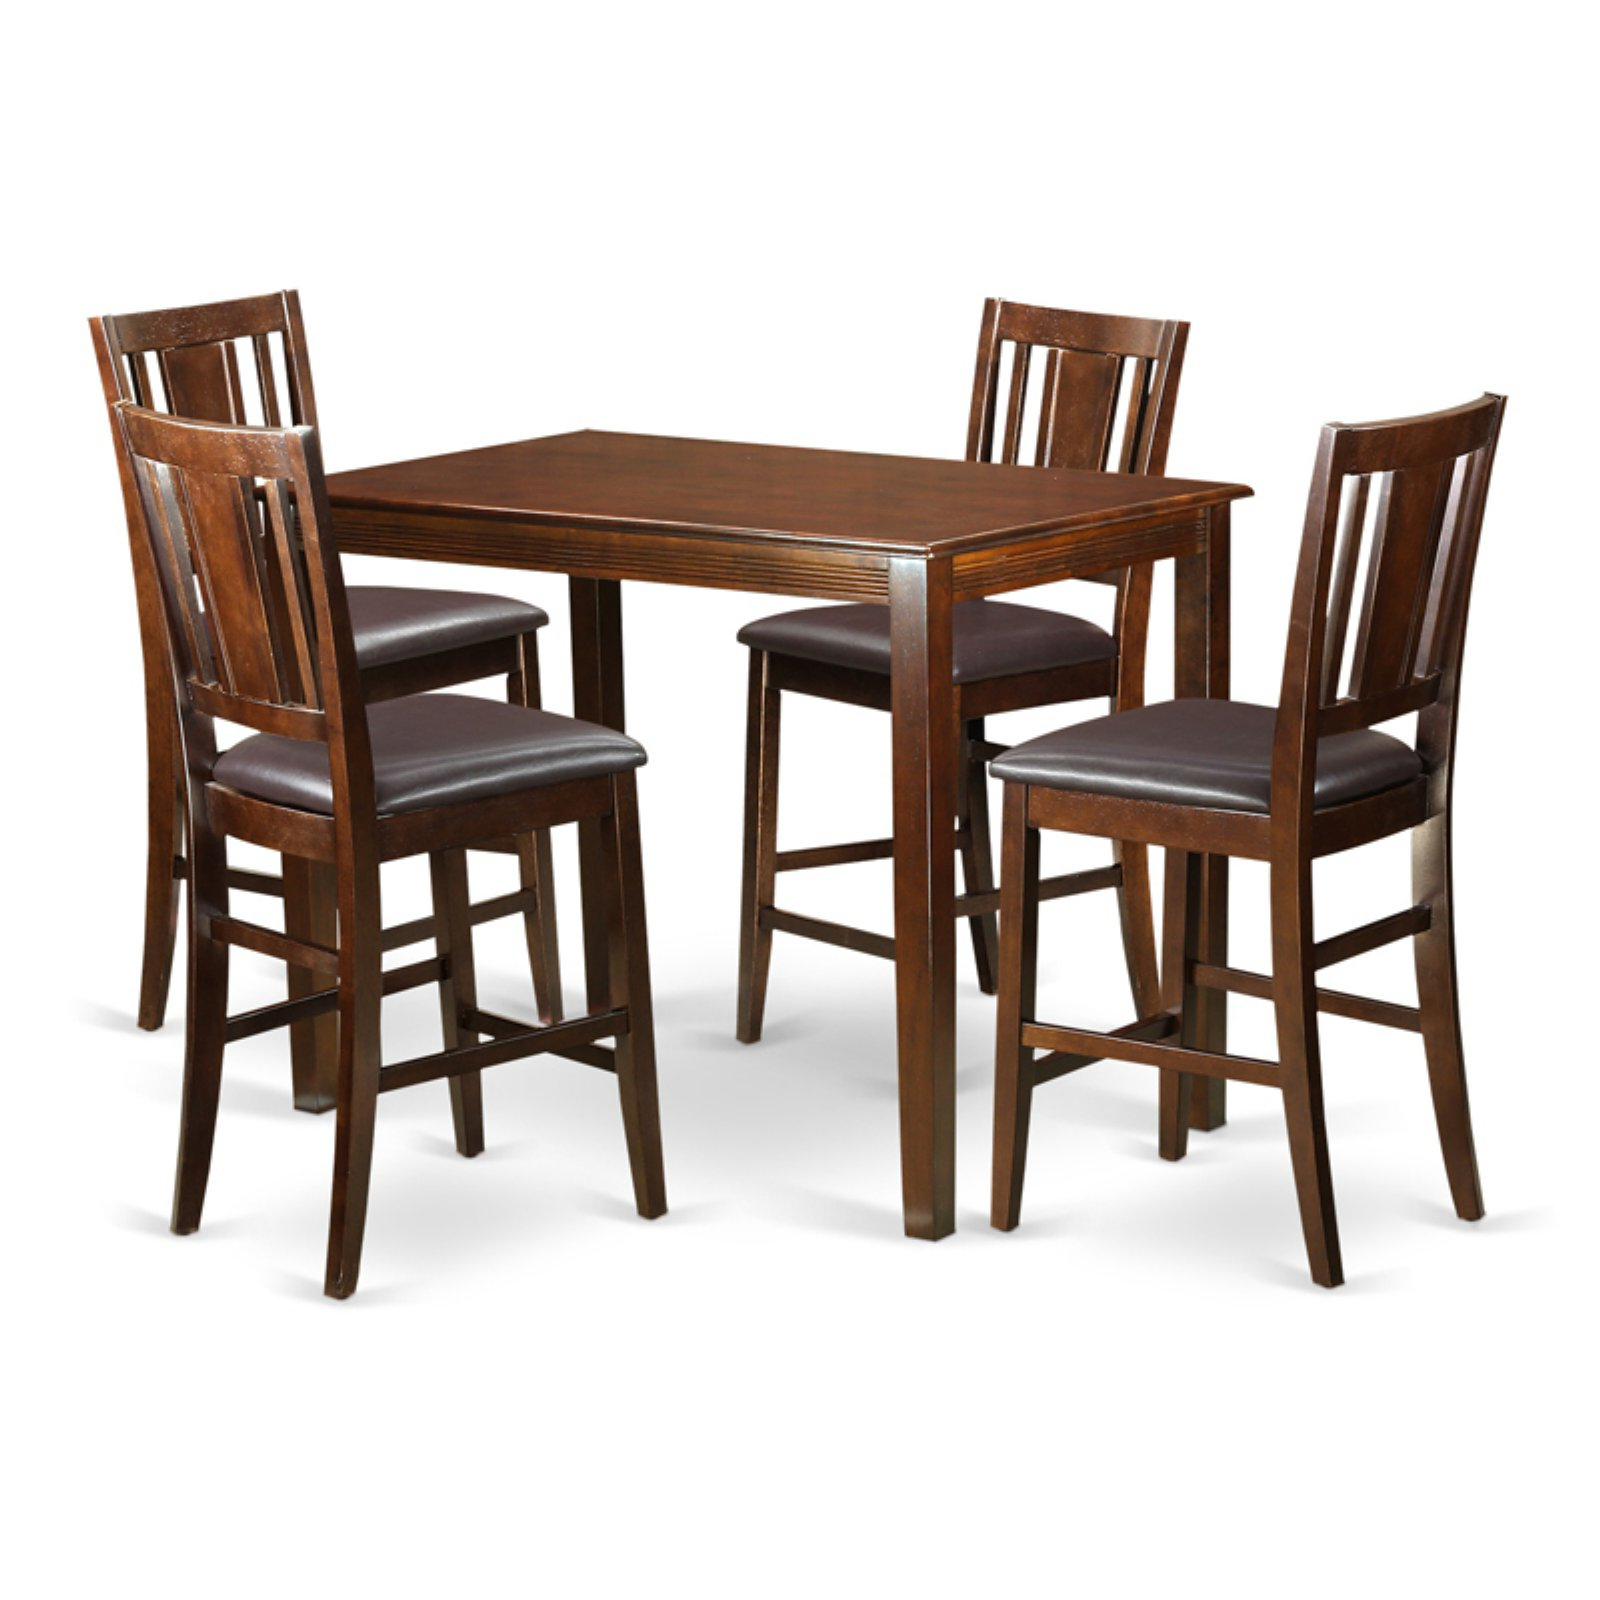 Sundberg 5 Piece Solid Wood Dining Sets Inside Most Current East West Furniture Yarmouth 5 Piece Scotch Art Dining Table Set (View 11 of 20)